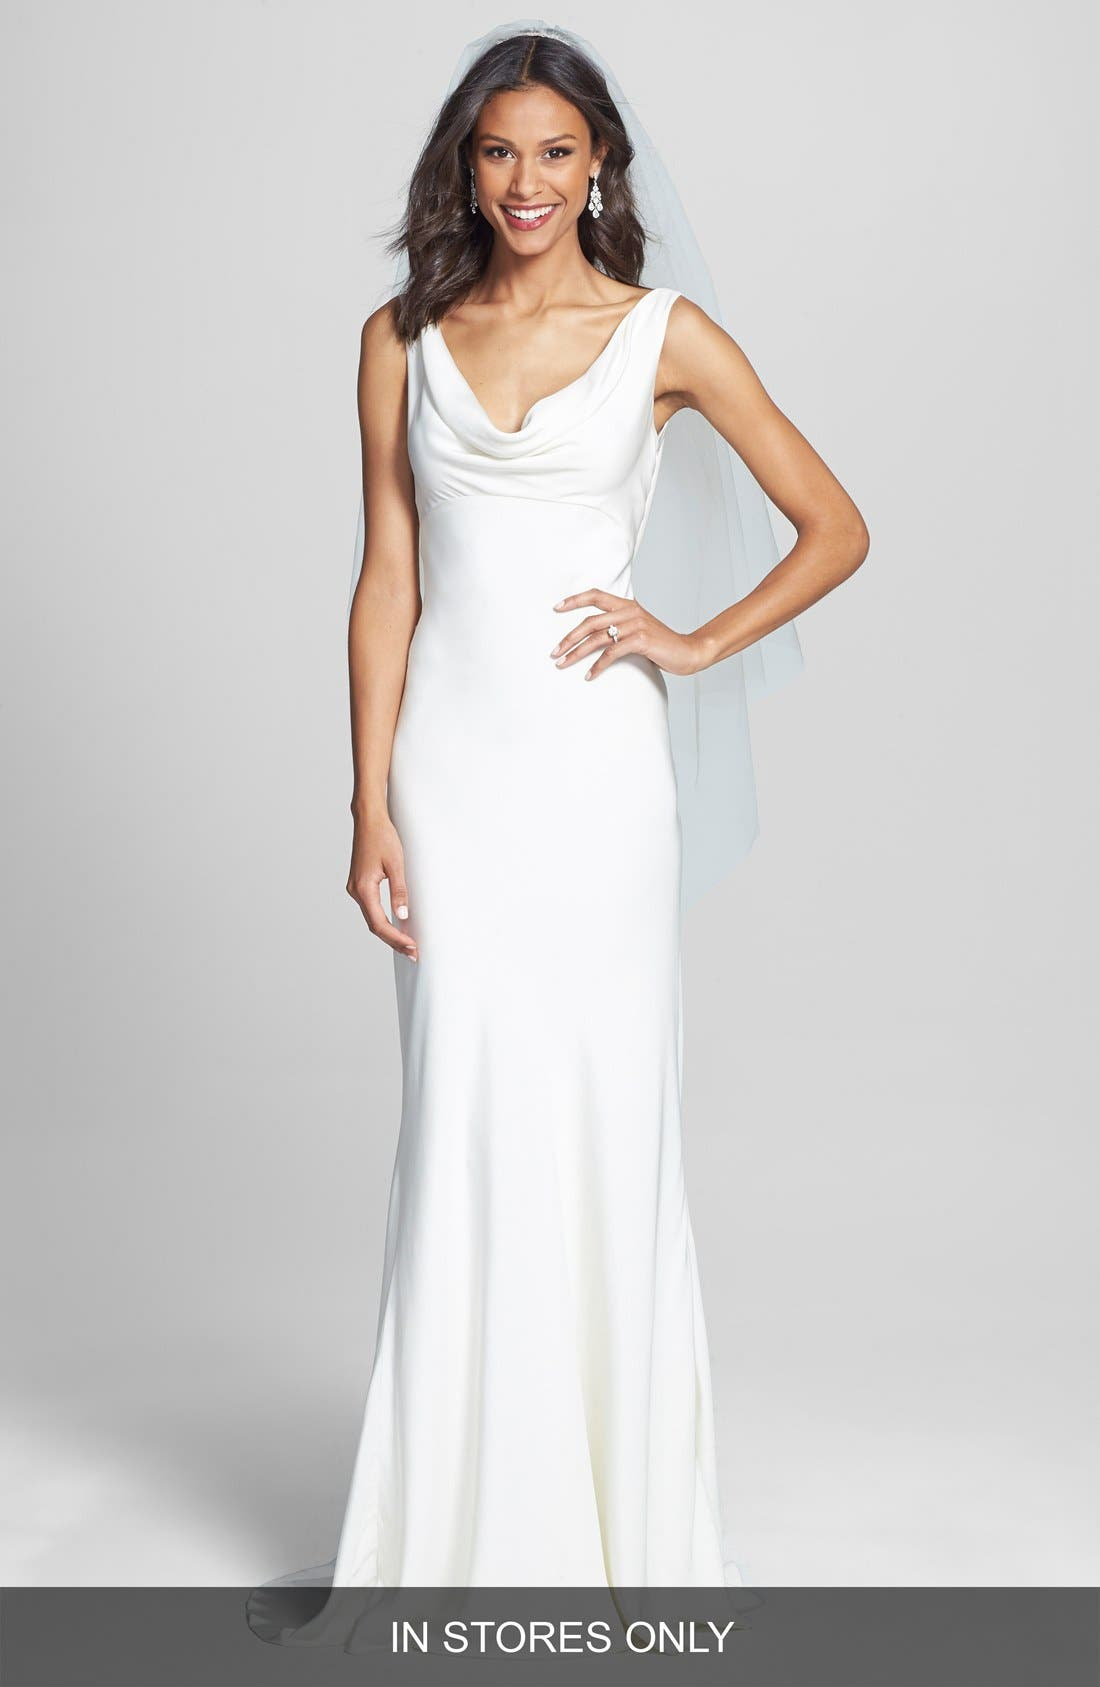 BLISS MONIQUE LHUILLIER Draped Neck Silk Crepe Wedding